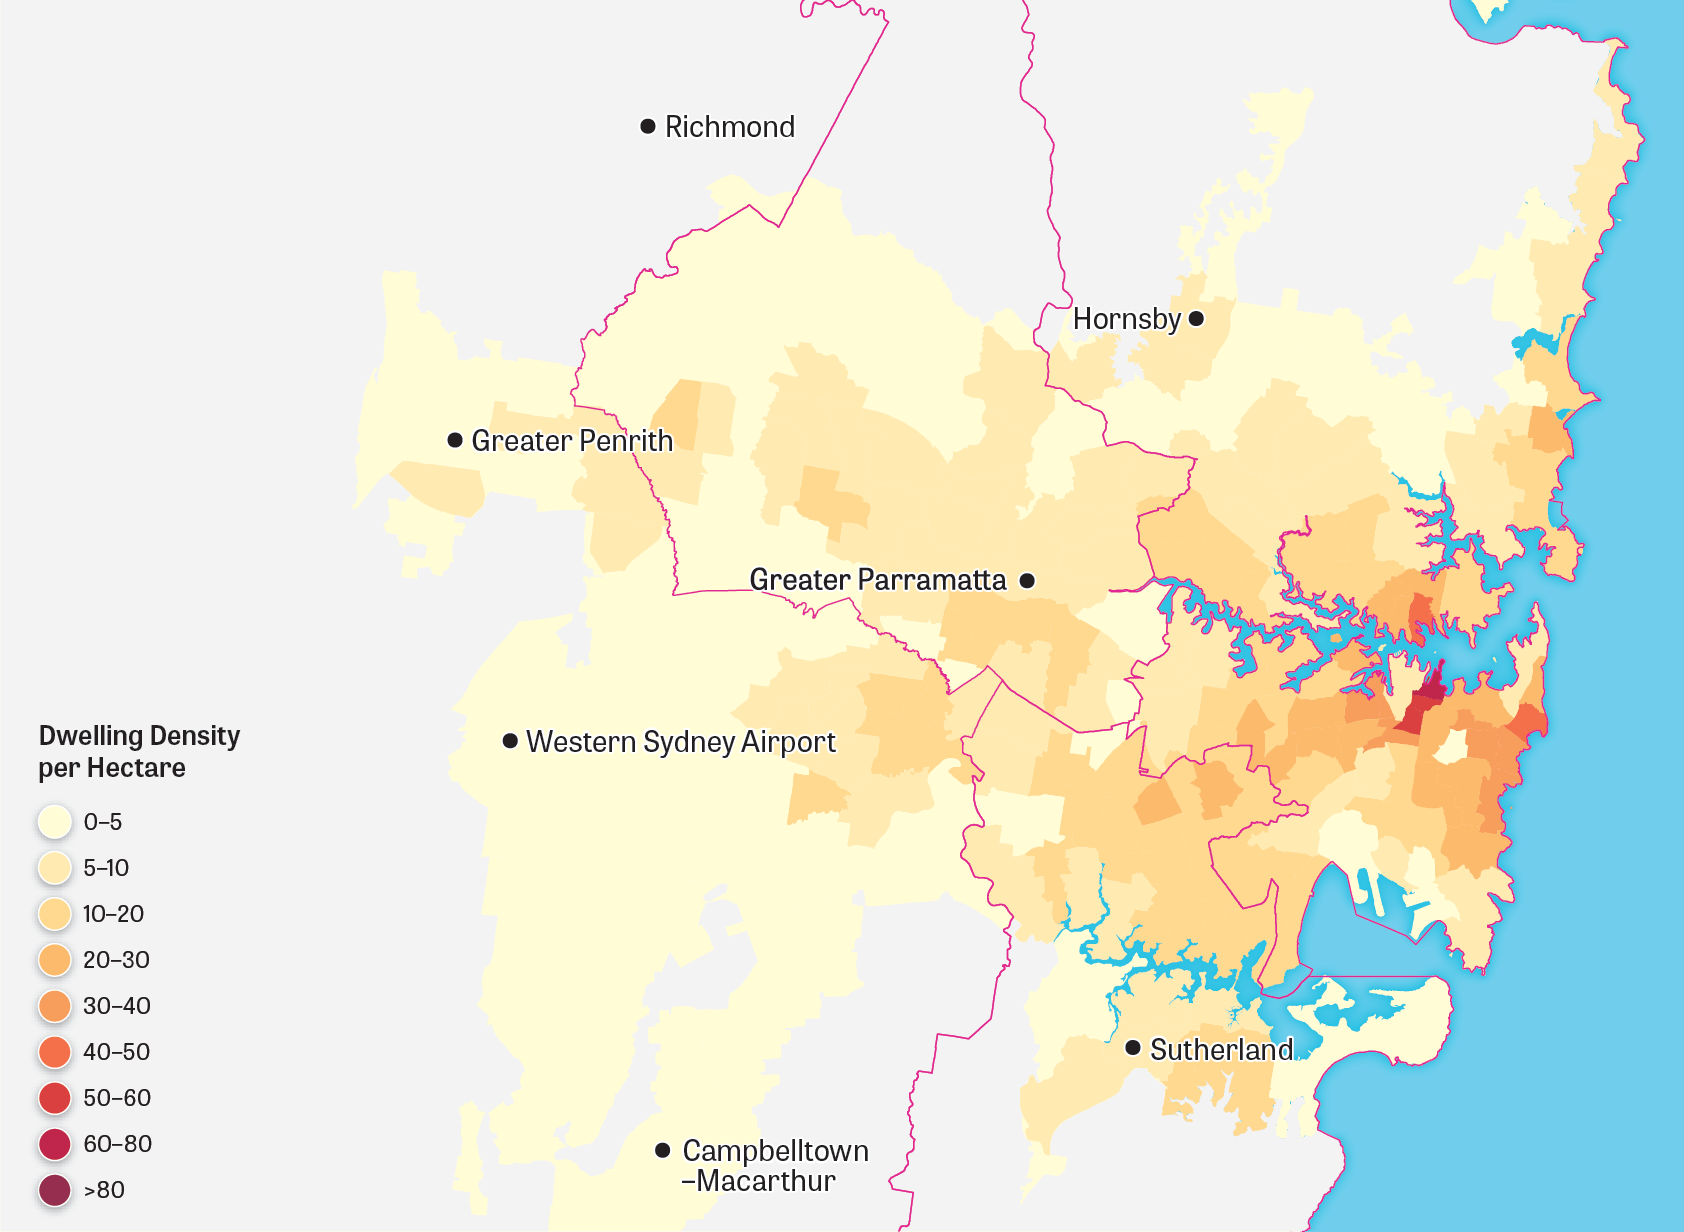 Map showing Greater Sydney's urban landform for 1996.